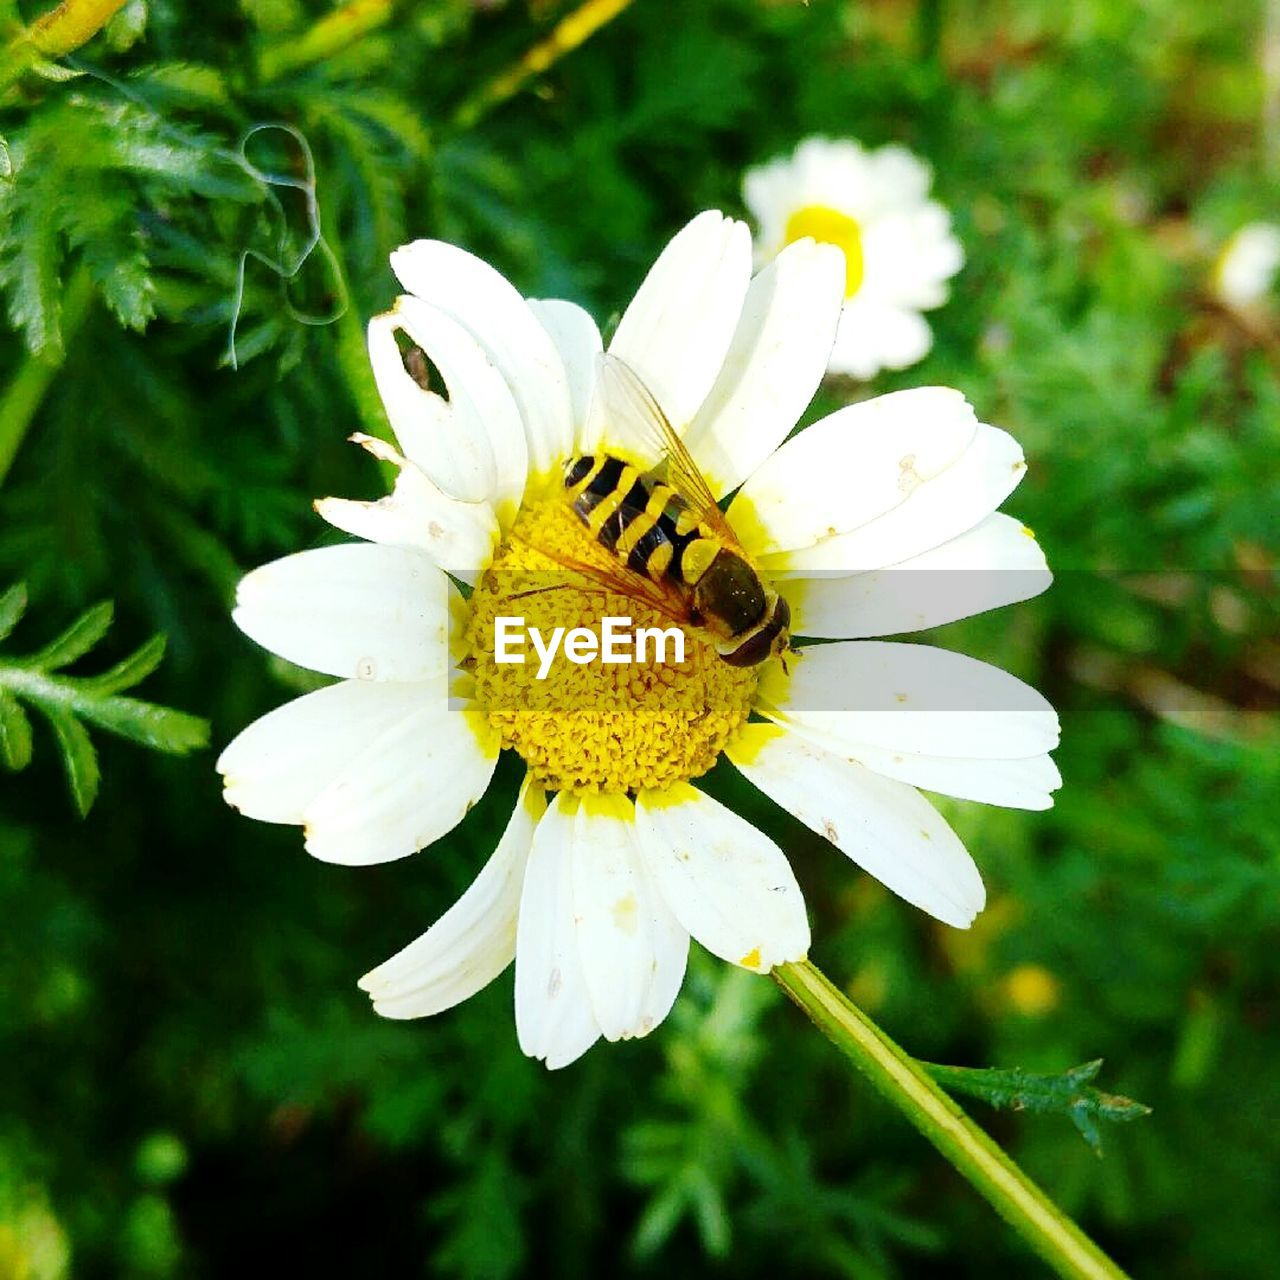 flower, petal, nature, flower head, beauty in nature, white color, fragility, growth, freshness, animal themes, one animal, pollen, plant, day, insect, outdoors, no people, animals in the wild, yellow, close-up, blooming, bee, pollination